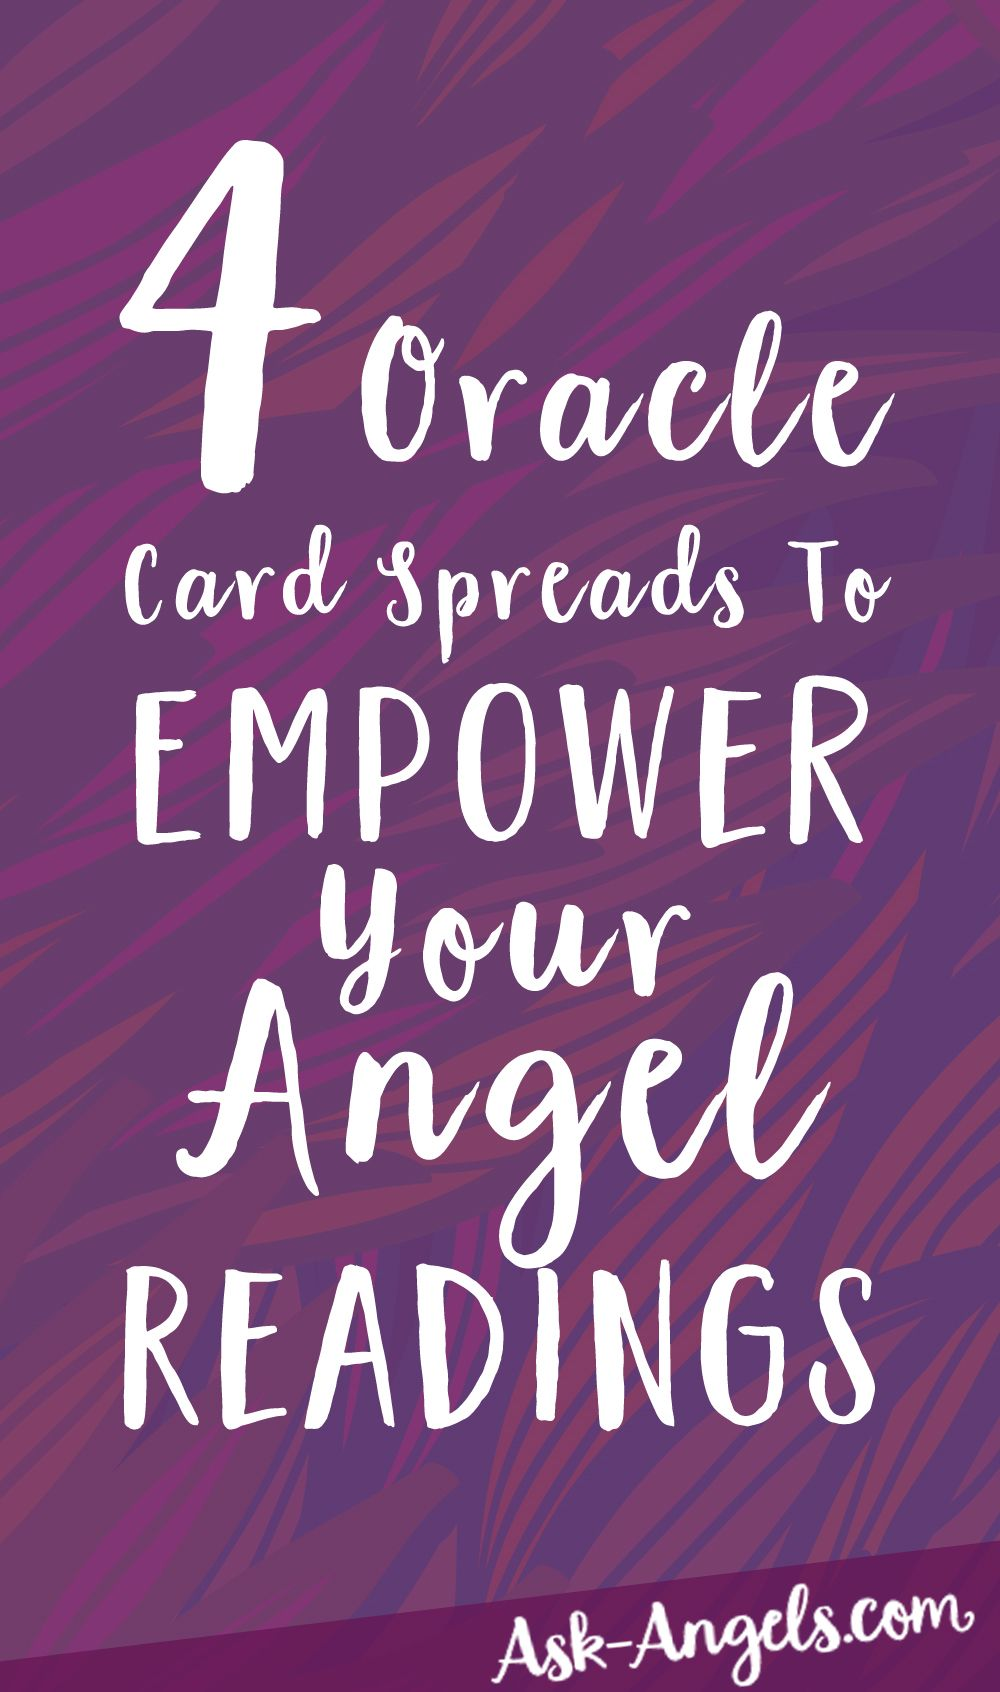 4 Oracle Card Spreads to Empower Accurate Readings! | 5/10